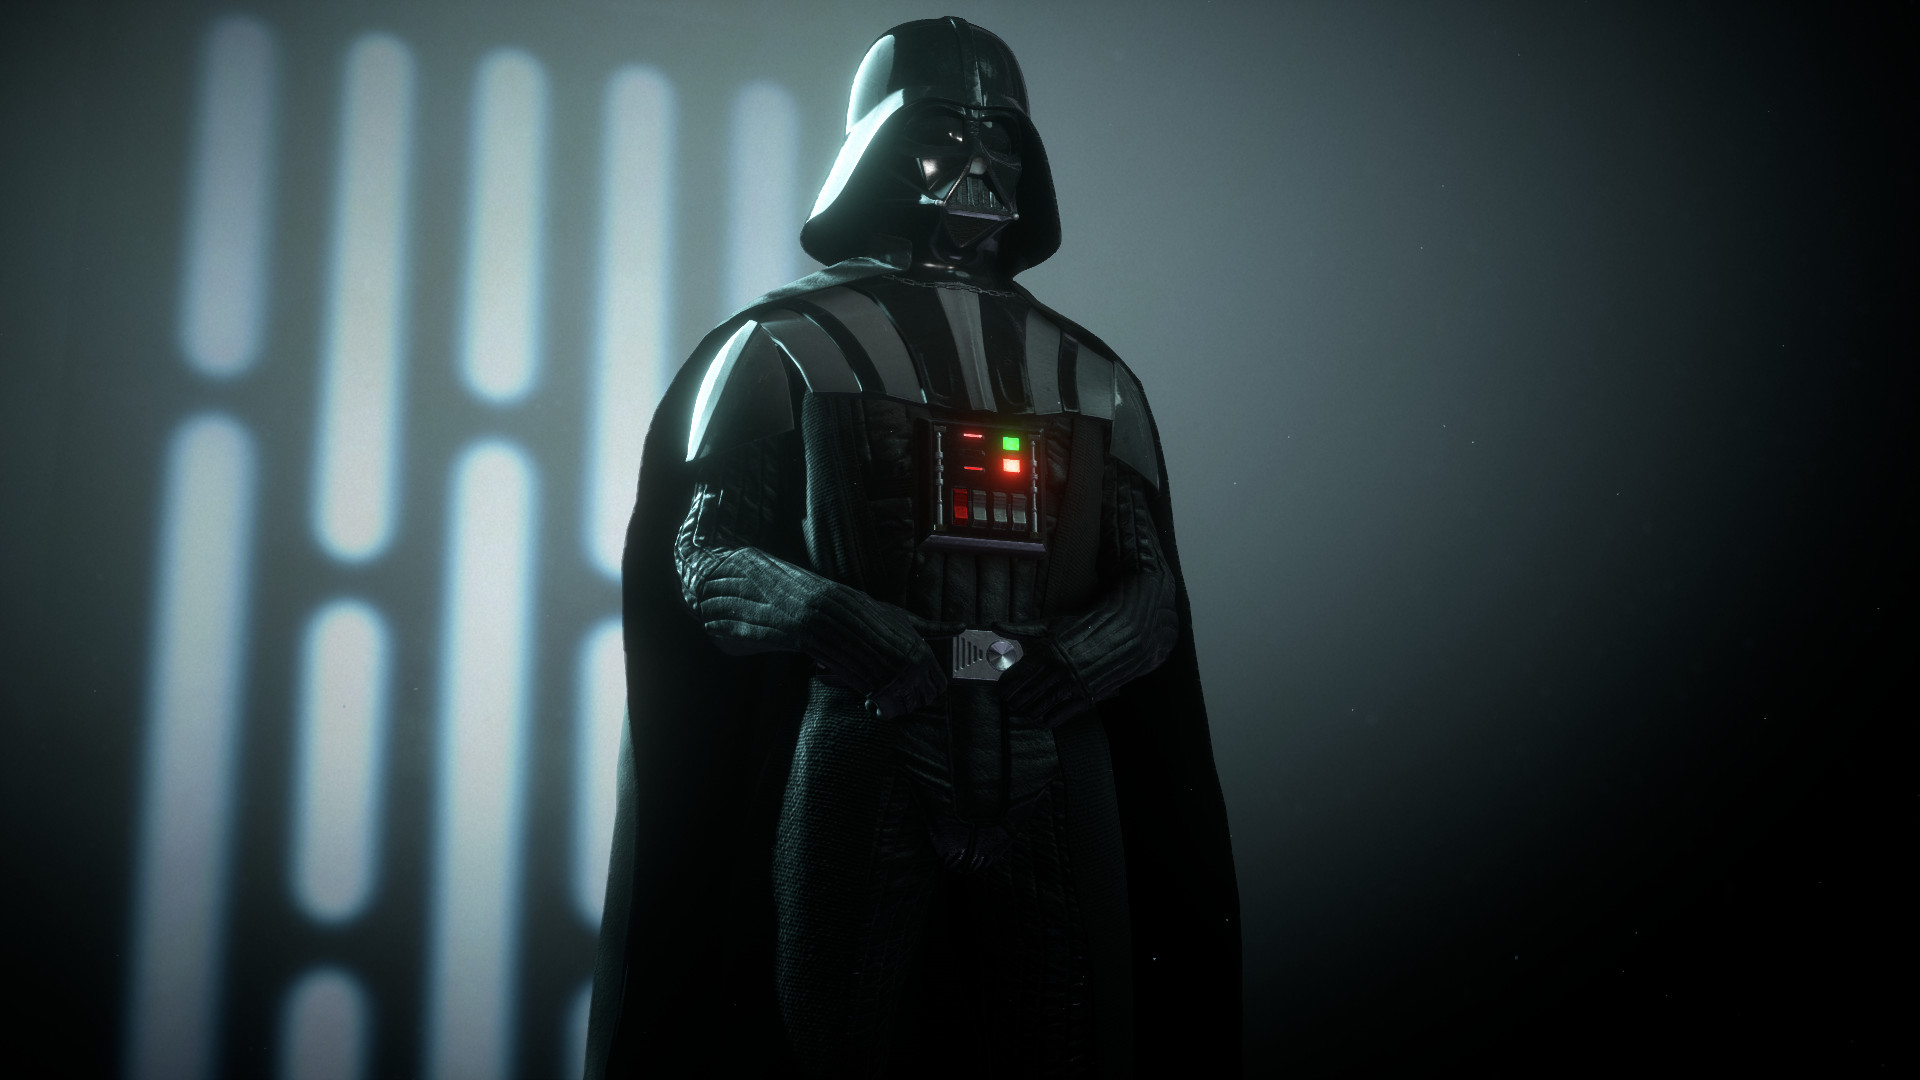 Darth Vader Revenge Of The Sith At Star Wars Battlefront Ii 2017 Nexus Mods And Community